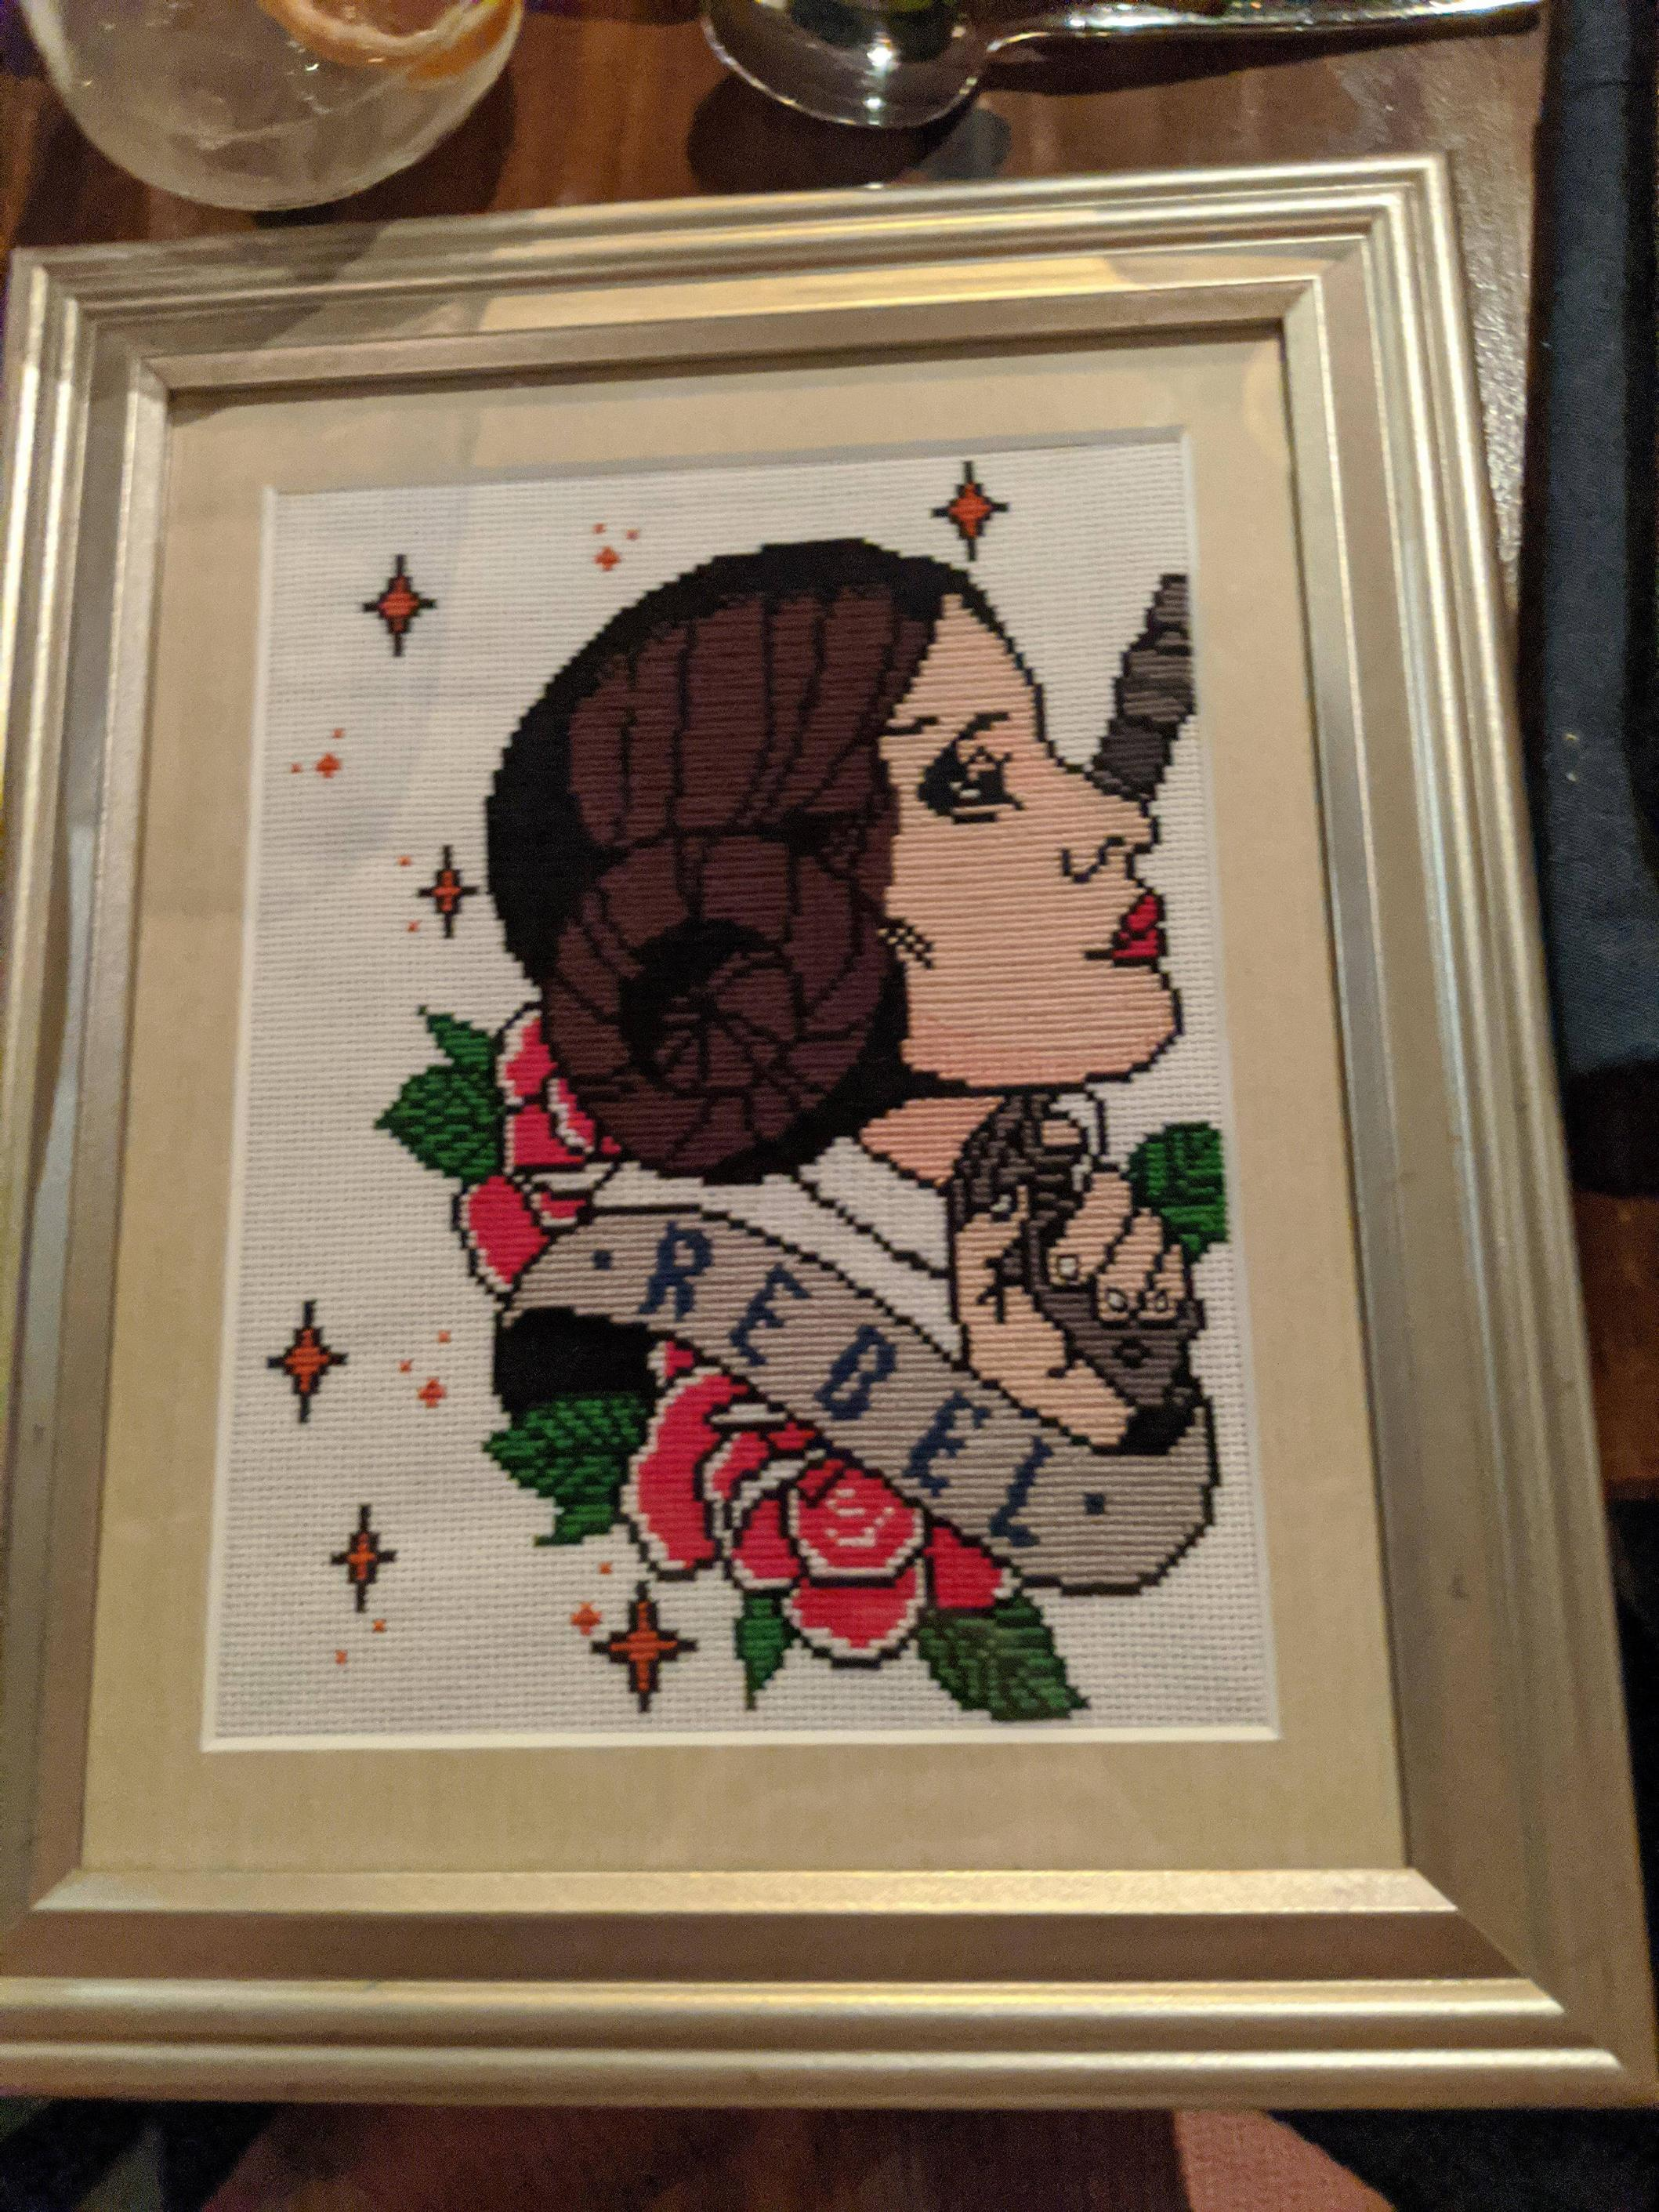 We did a secret santa exchange at work. My coworker free-hand cross stitched this for me and I still can\'t believe it.